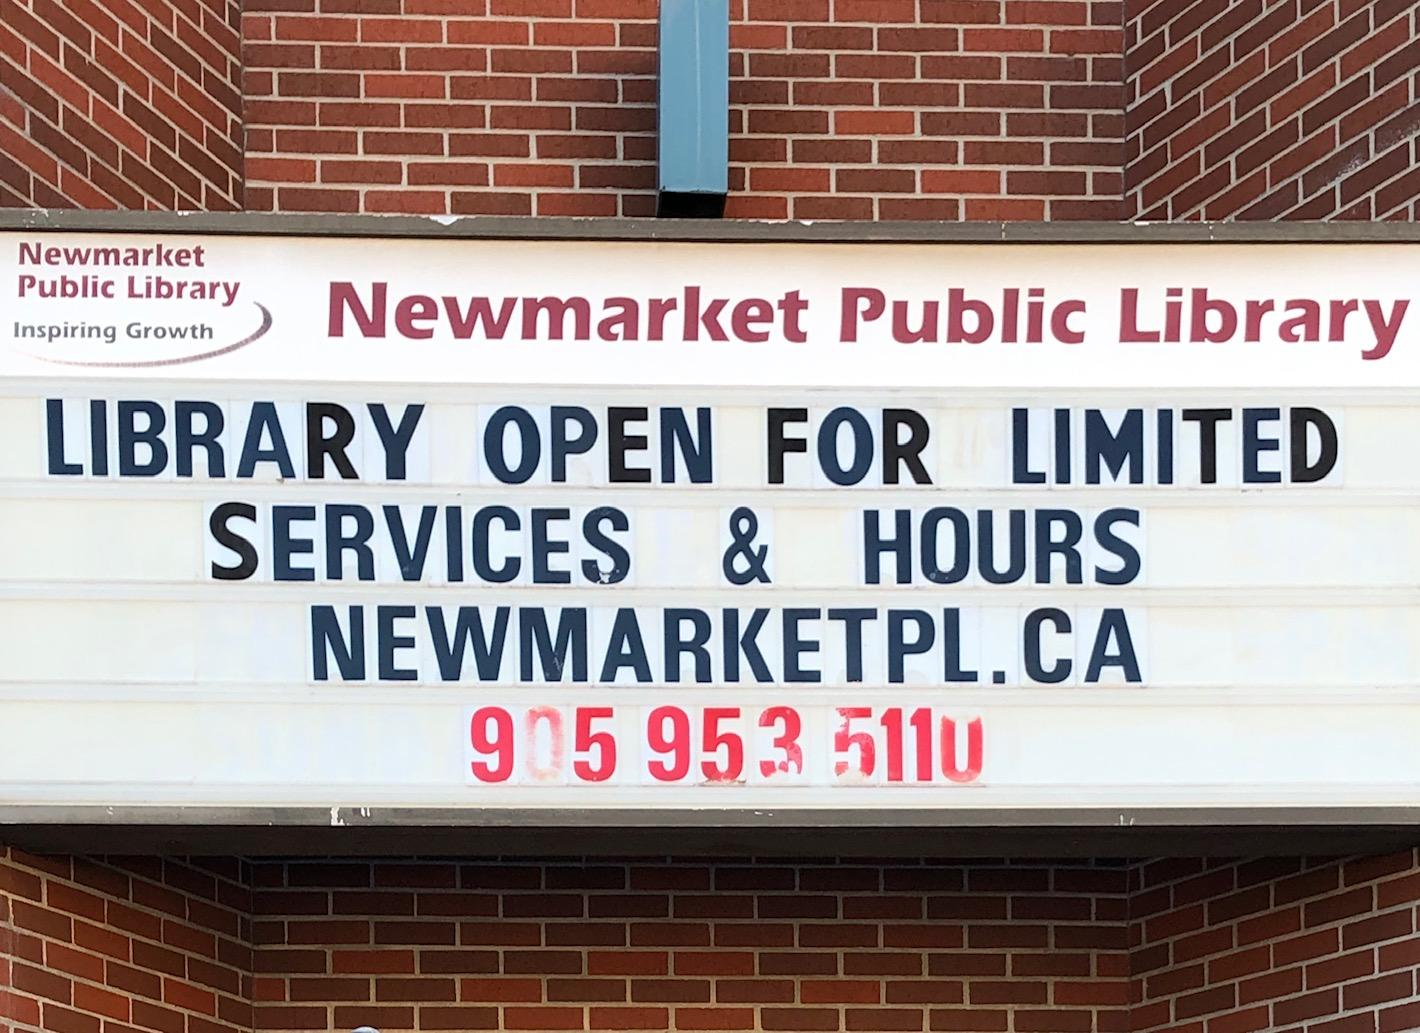 Newmarket Public Library open for limited services and hours